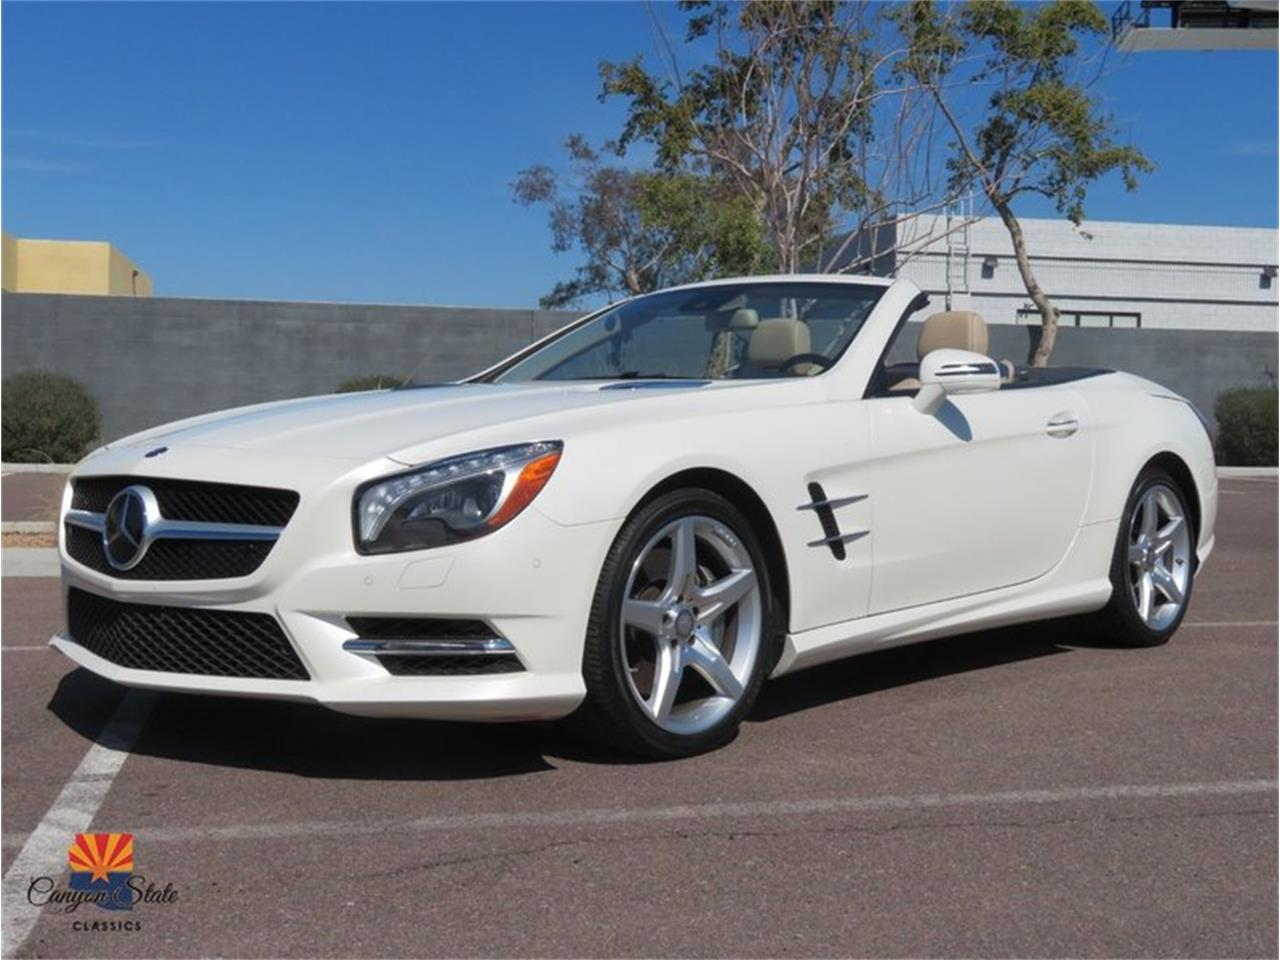 2013 Mercedes-Benz SL-Class for sale in Tempe, AZ – photo 13